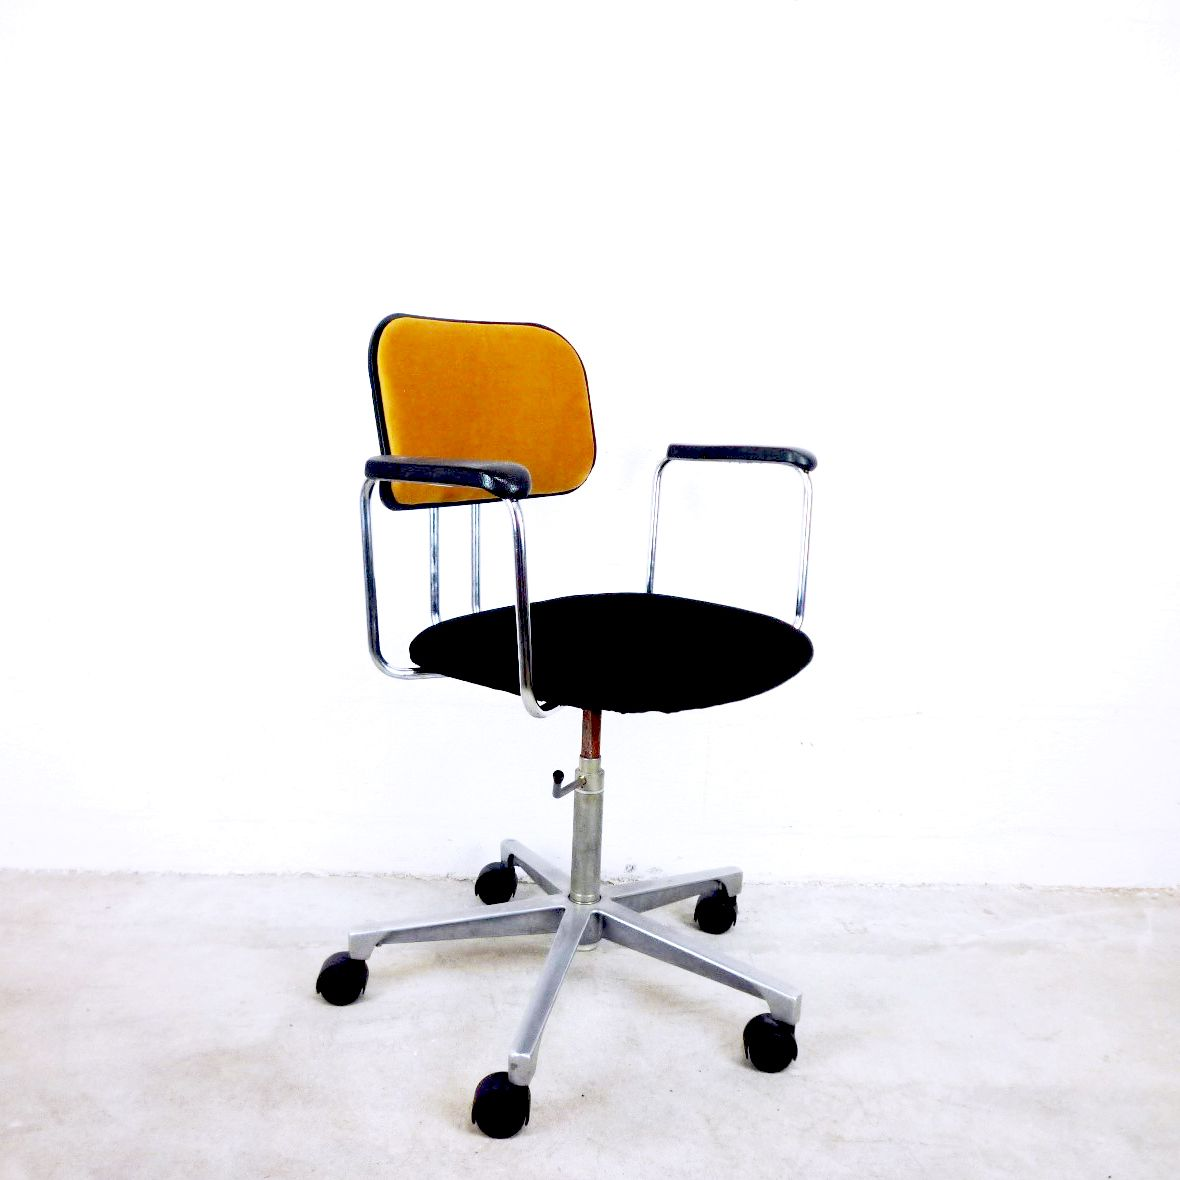 Vintage Swedish Velvet Office Chair From AB Kontor Möbler For Sale At Pamono